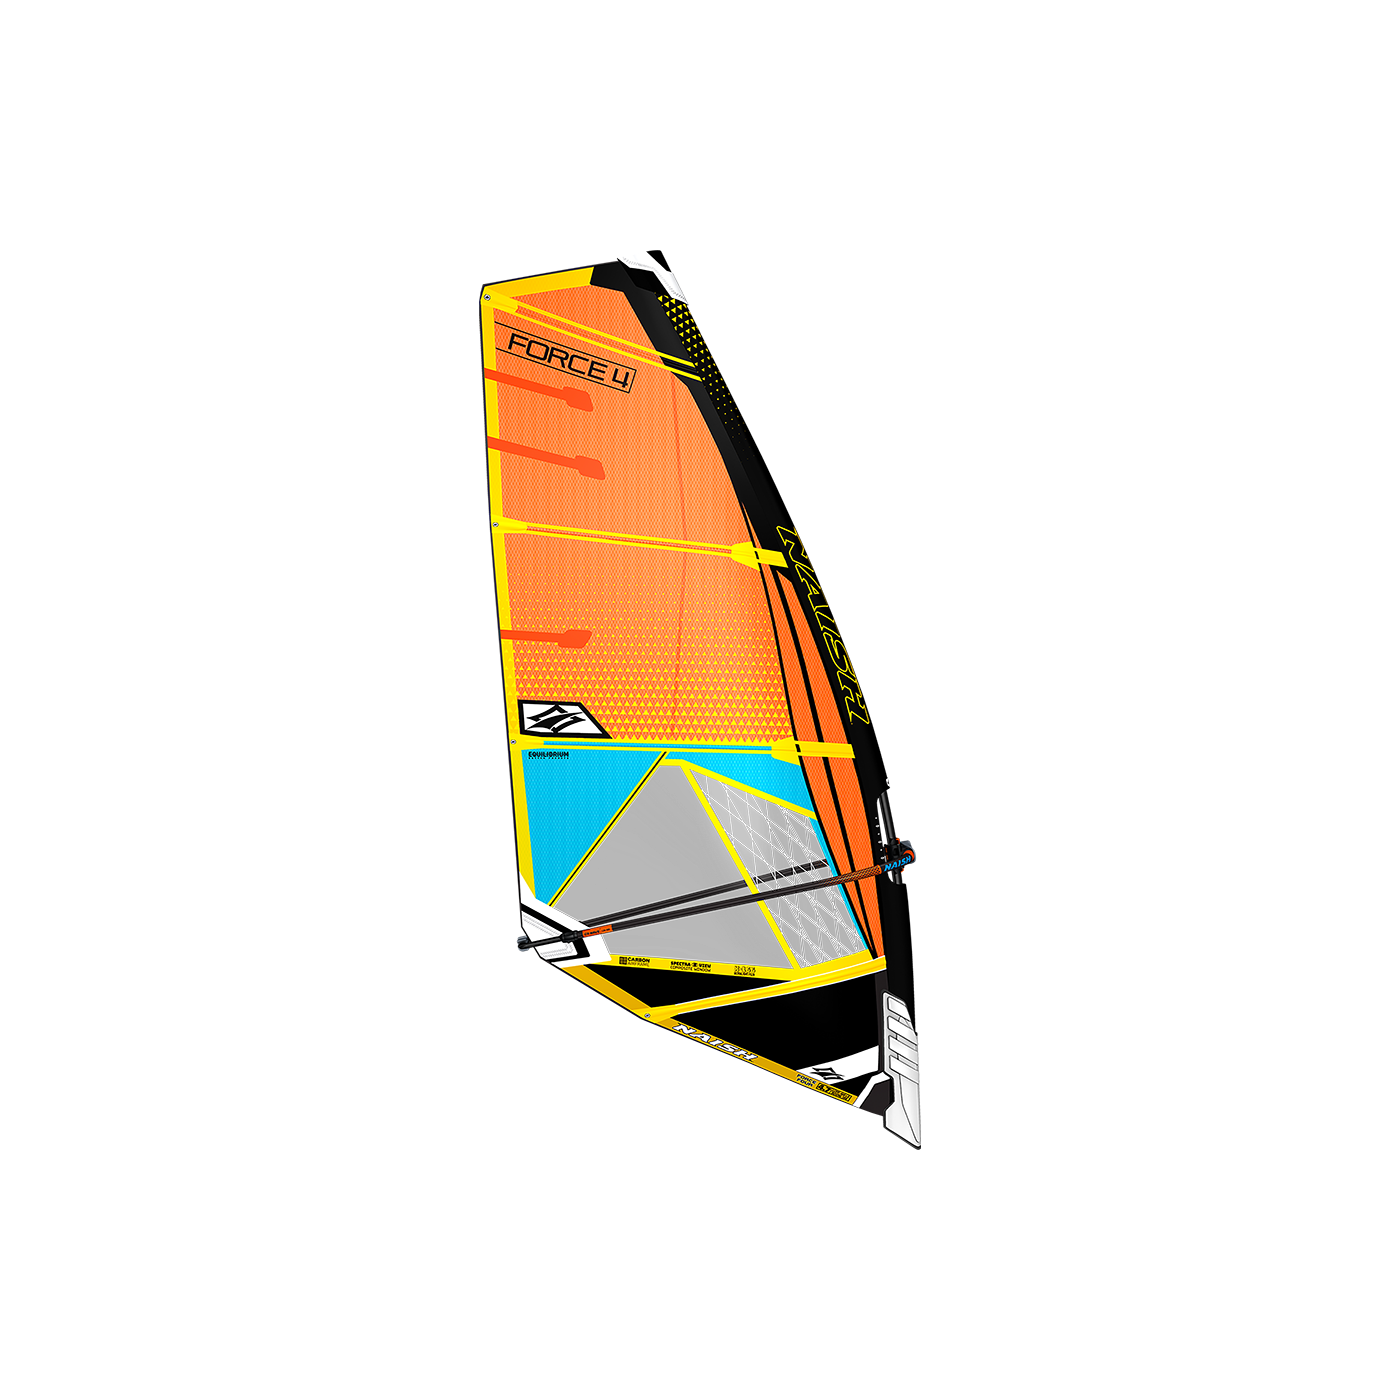 2020 Naish Force IV Windsurfing Sail